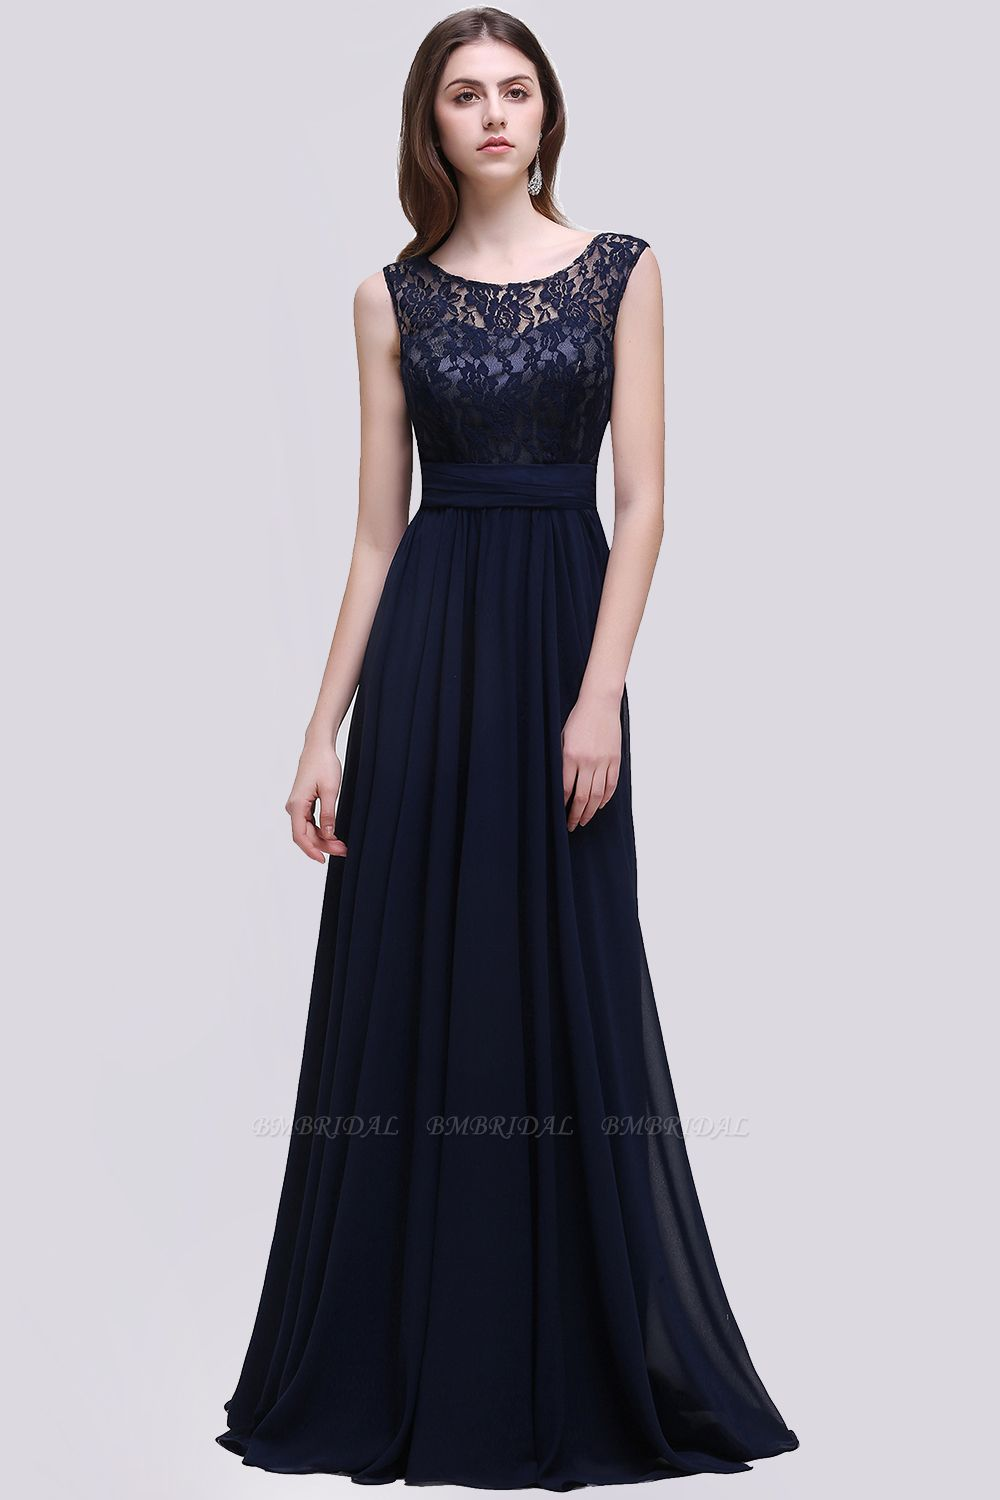 Vintage Lace Scoop Sleeveless Dark Blue Bridesmaid Dress with V-Back